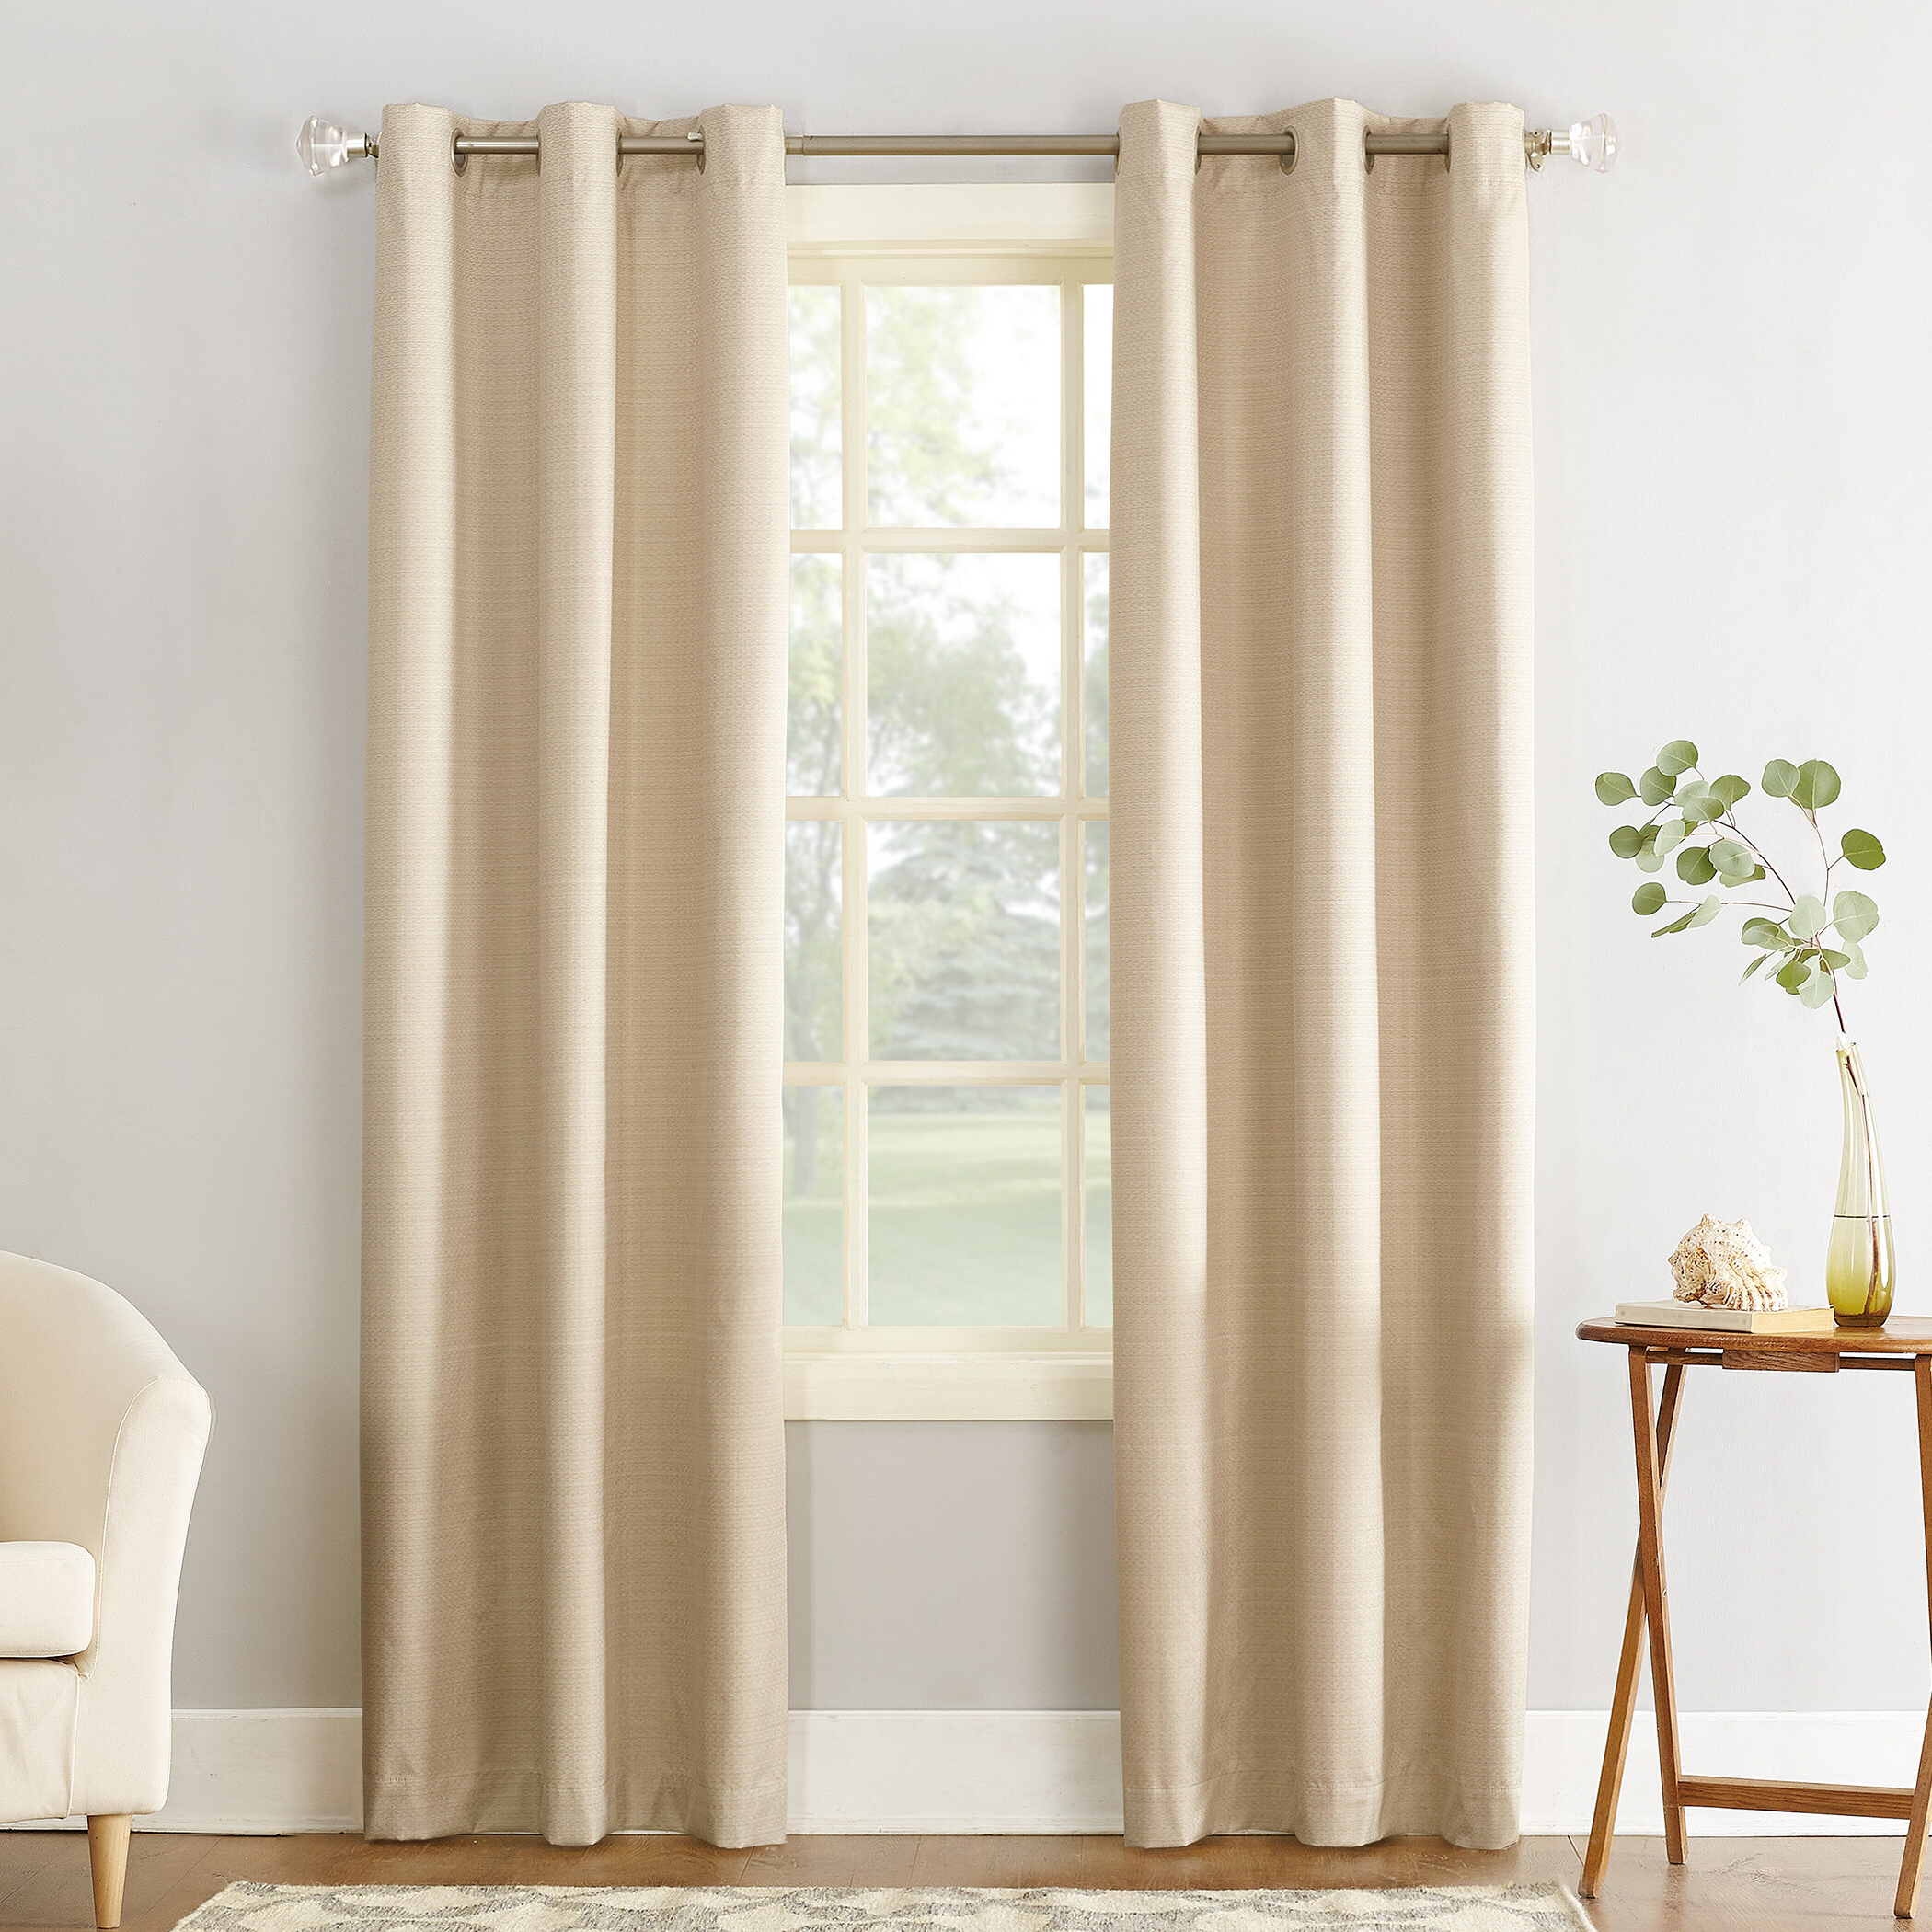 Latest Cooper Textured Thermal Insulated Grommet Curtain Panels Pertaining To Cooper Textured Solid Room Darkening Thermal Insulated Grommet Single Curtain Panel (View 4 of 20)